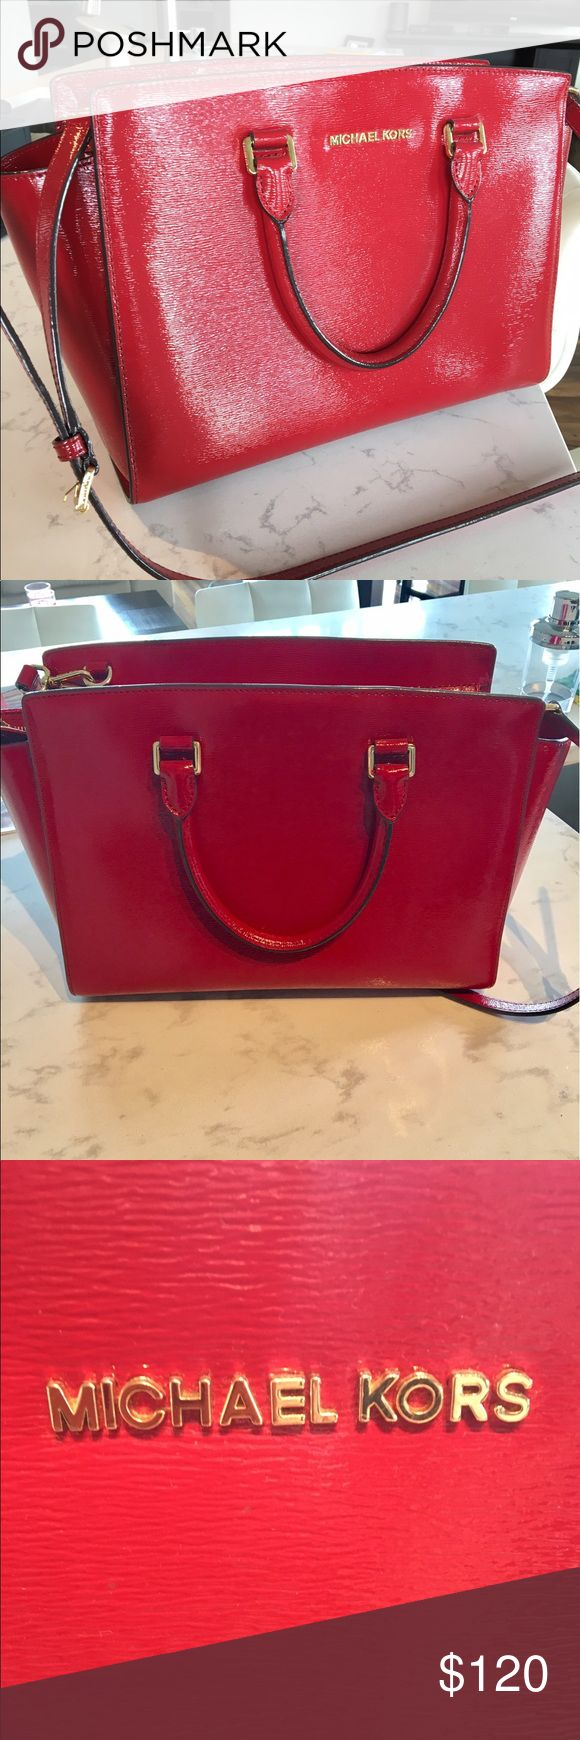 Red Michael Kors Bag Barely used, medium to large sized bag Michael Kors Bags Shoulder Bags